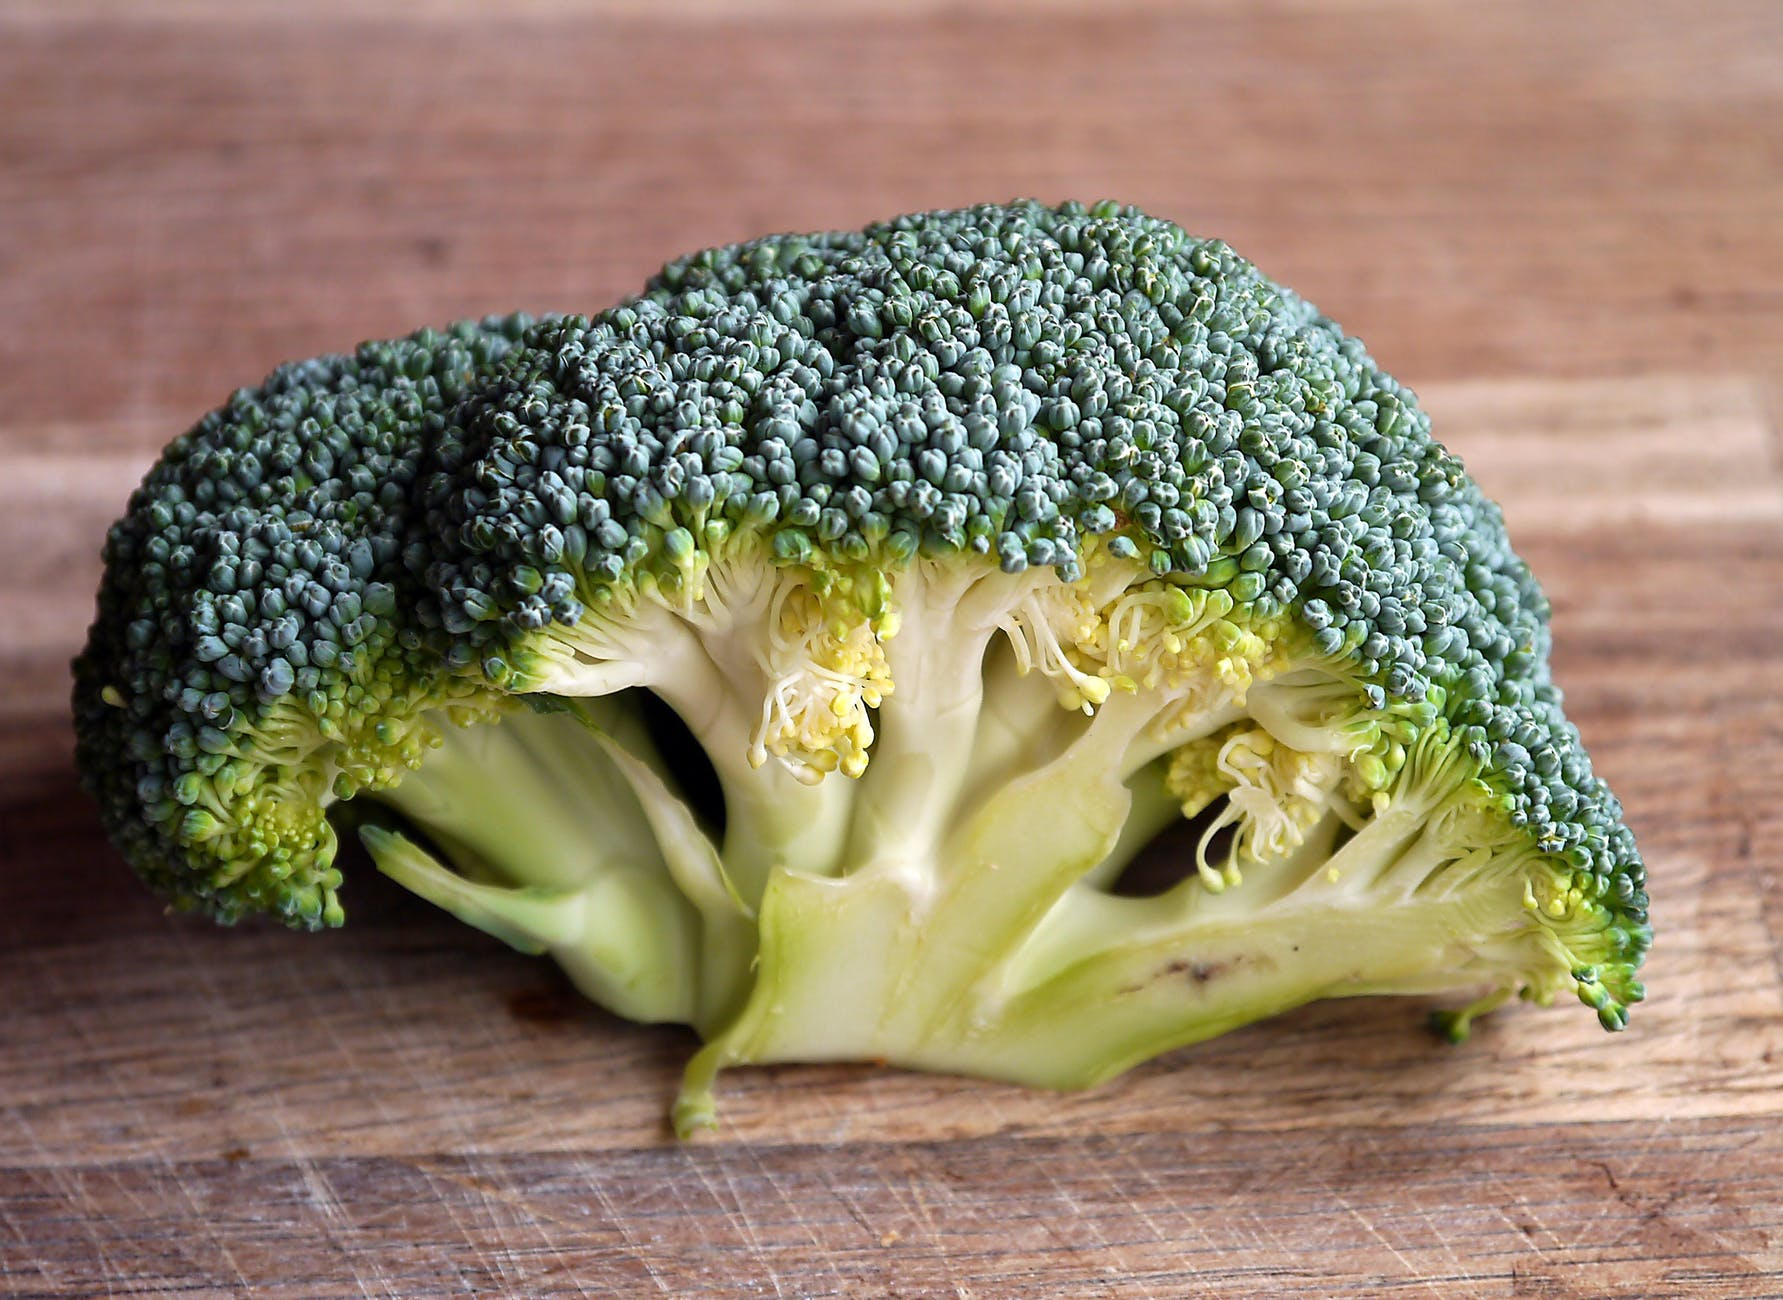 Broccoli as Immune Booster Food